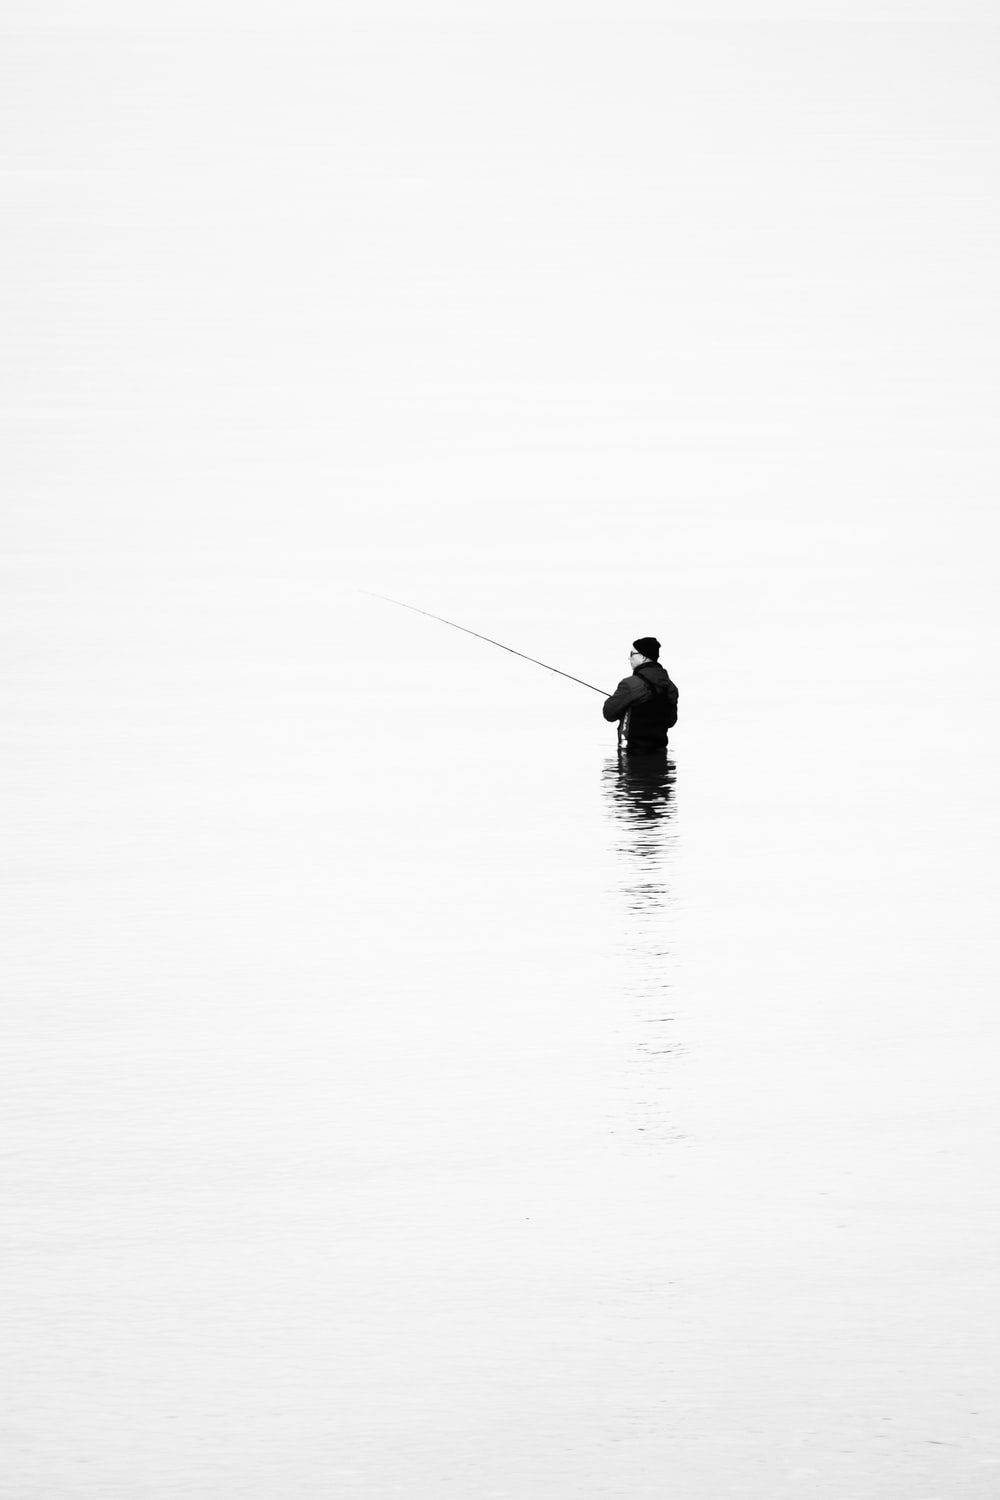 person in black jacket fishing on water